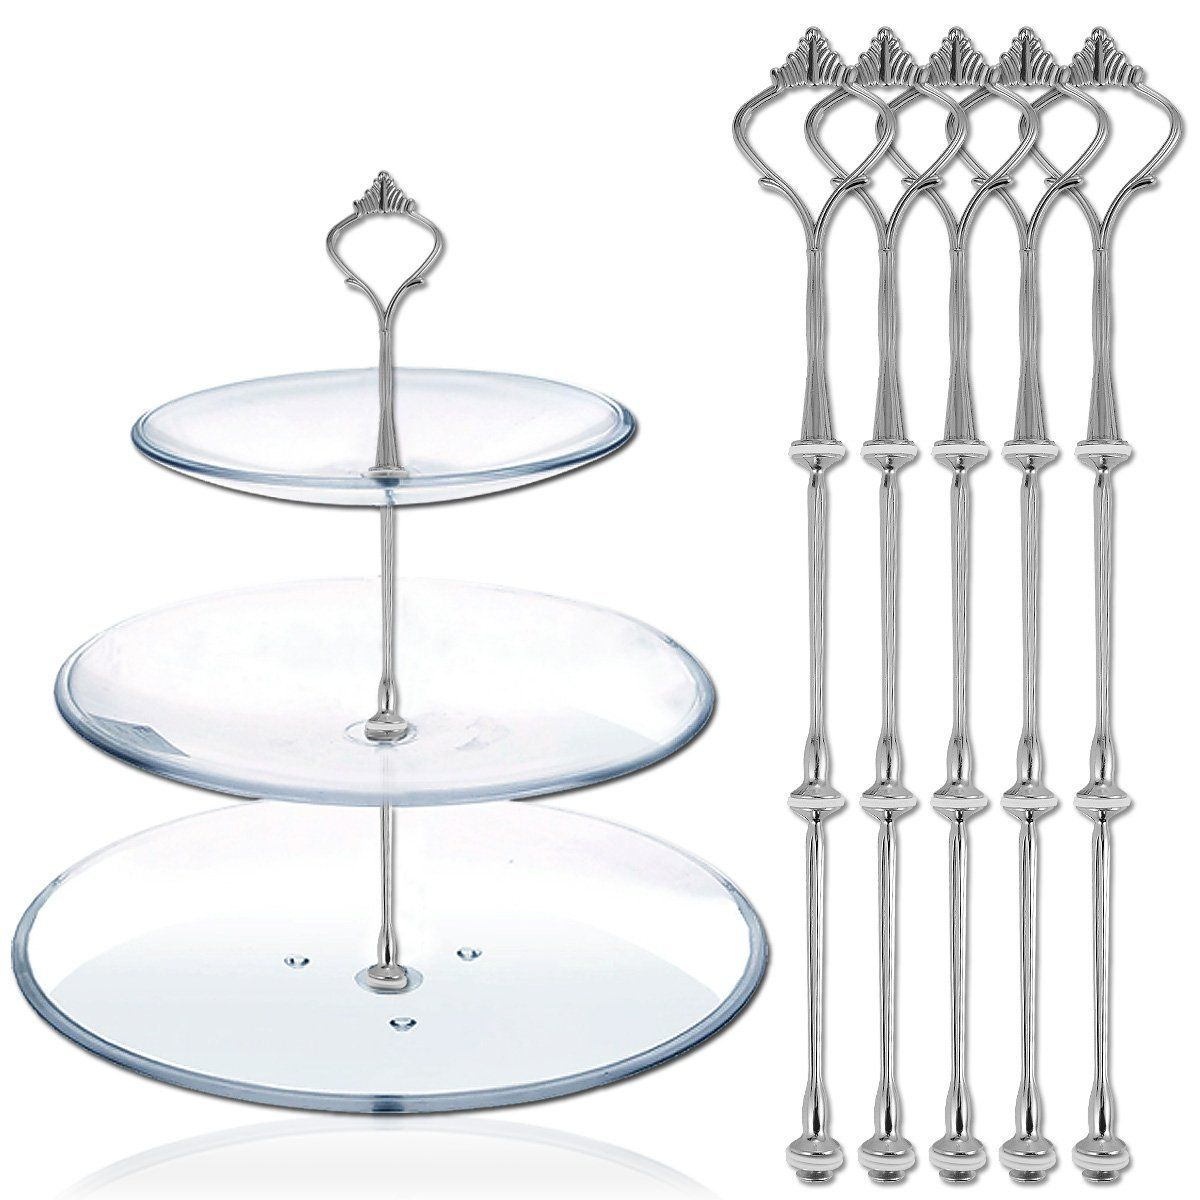 Cake stand fittings sets for 3 tier stands with fixings Many Patterns